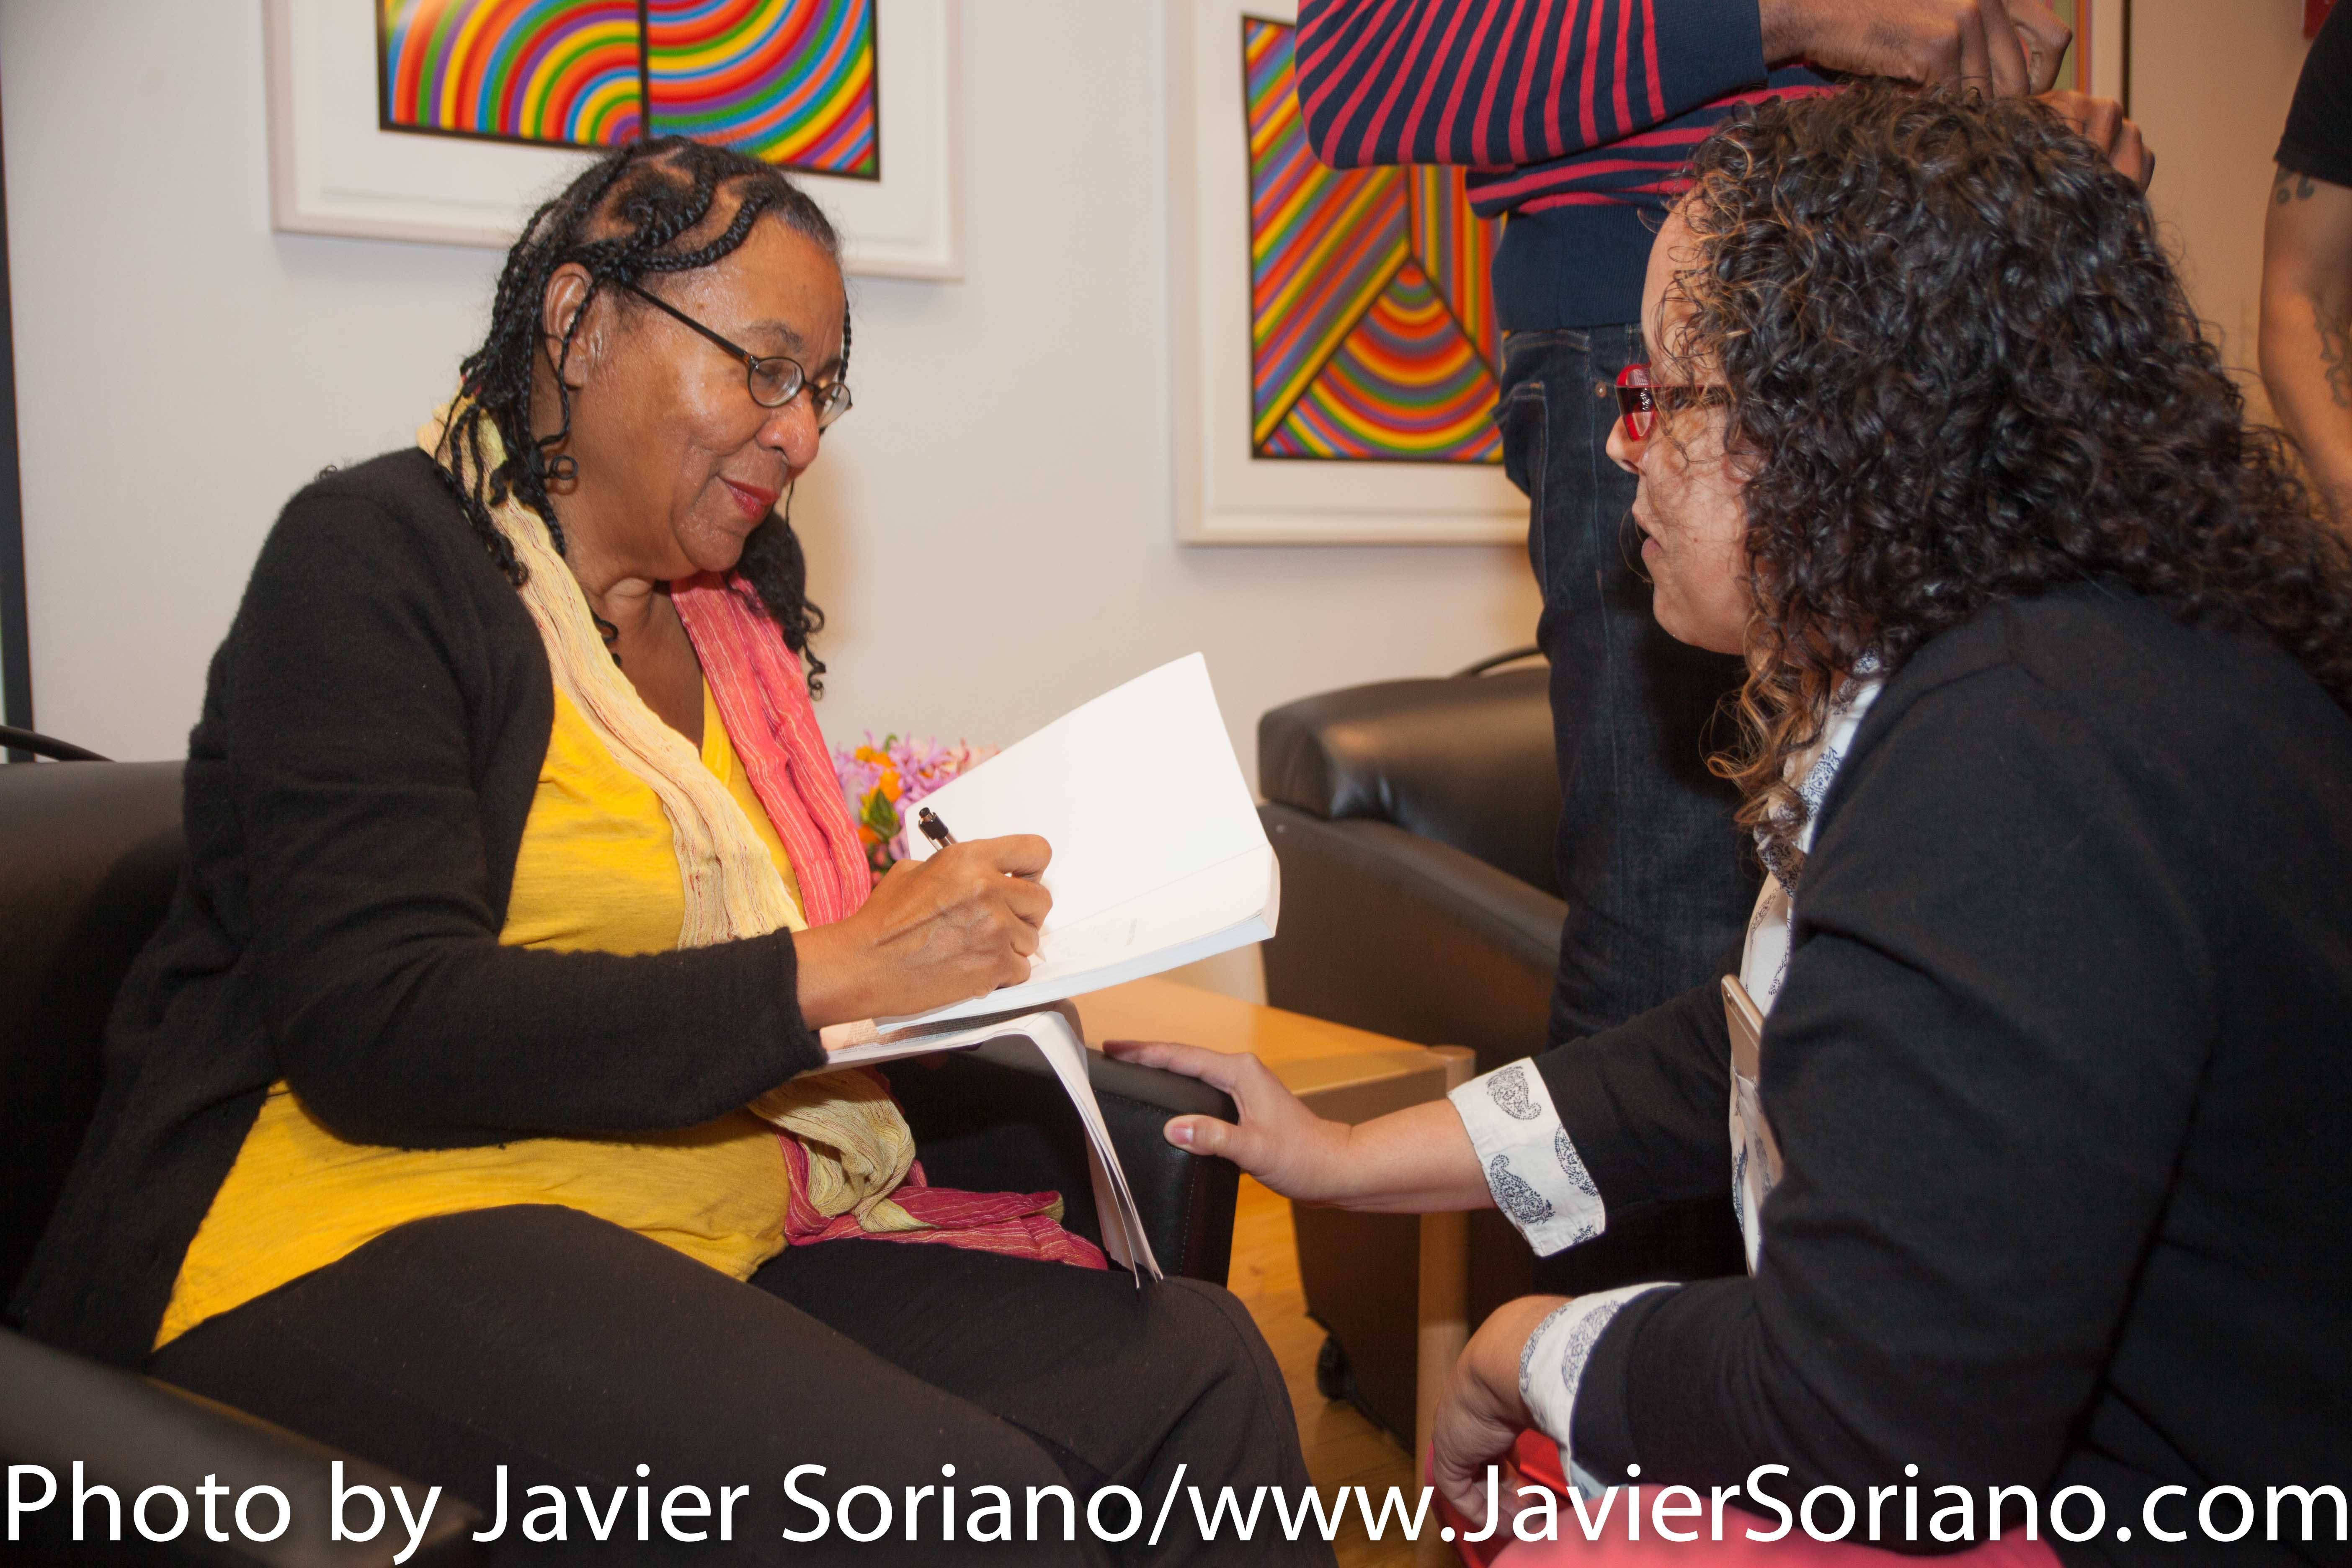 bell hooks + Marci Blackman + Darnell Moore: Moving from Pain to Power: Confronting Loss. Wednesday, October 7, 2015. Wollman Hall, Eugene Lang College. The New School. 65 West 11th Street. Room B500, New York City. Photo by Javier Soriano/http://www.JavierSoriano.com/